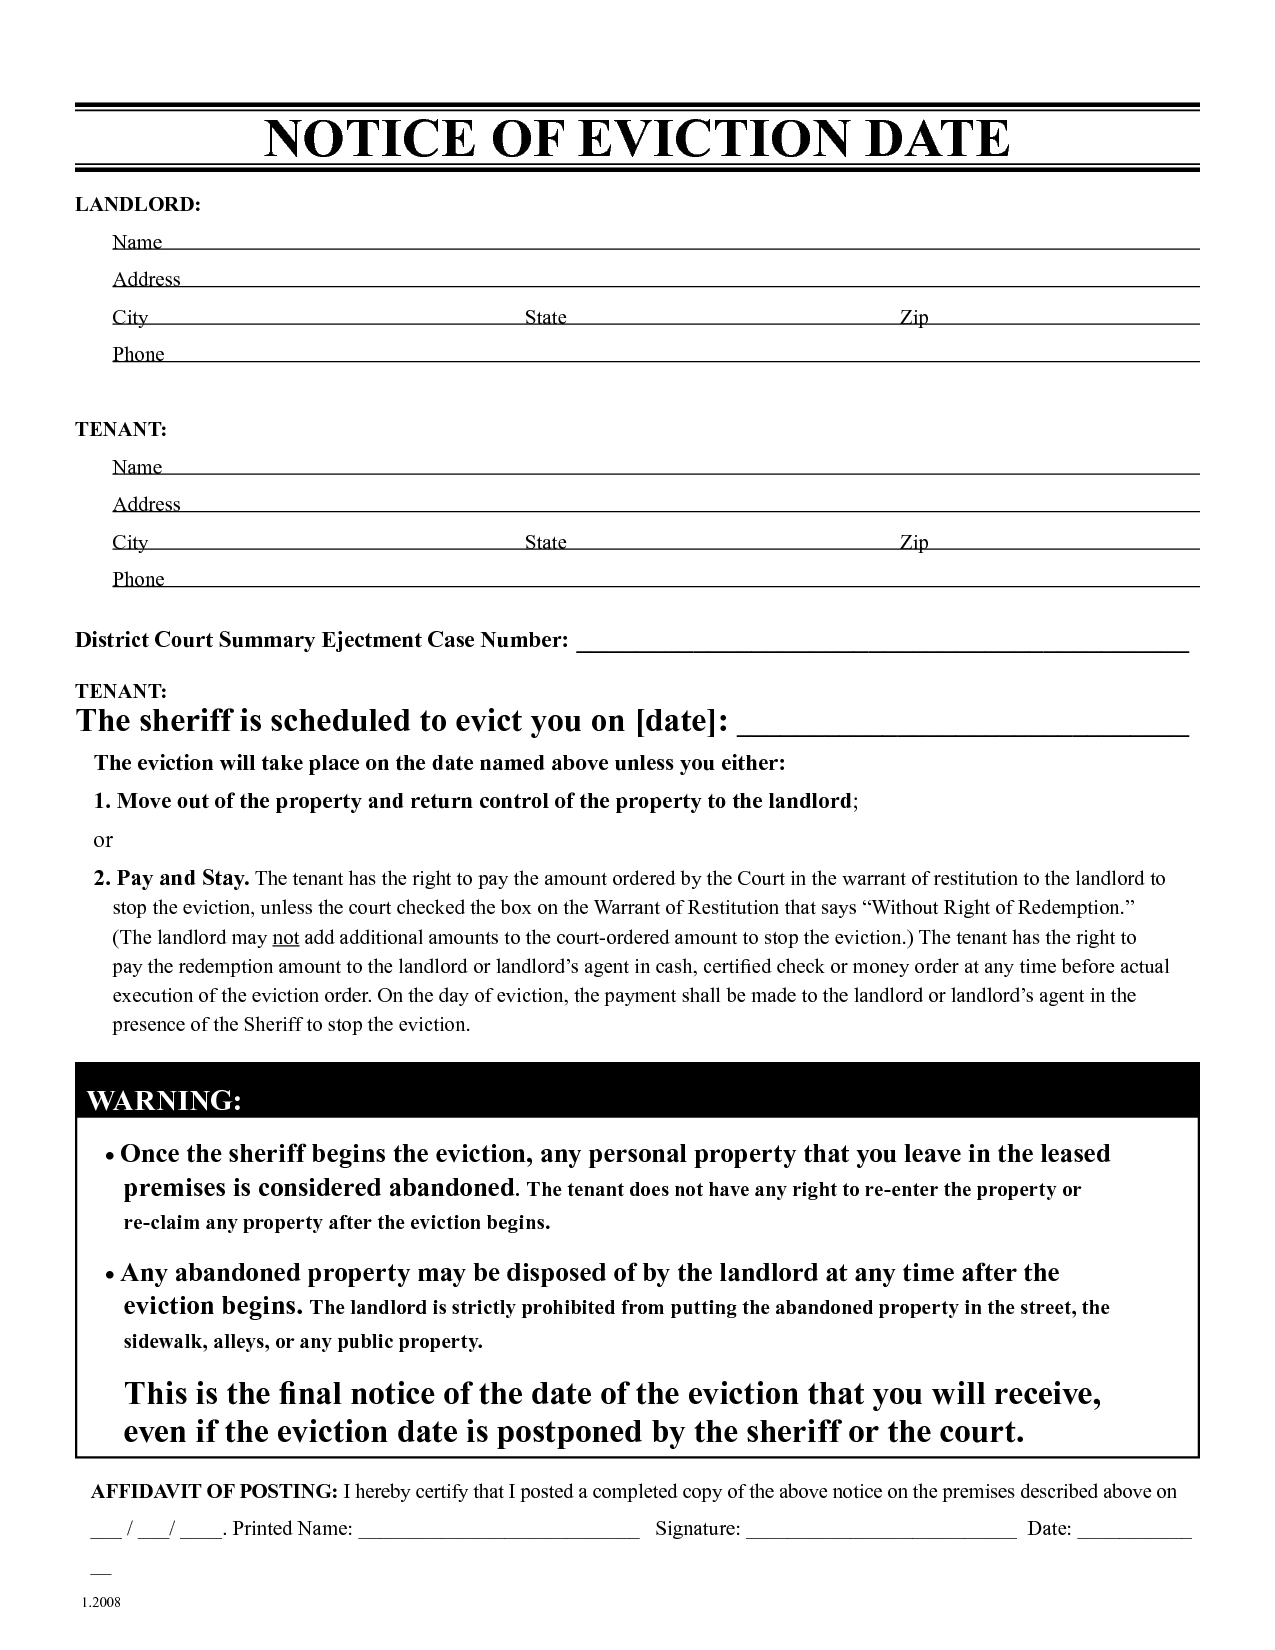 Free Eviction Notice Template   Printable Eviction Notice   Leaave - Free Printable Blank Eviction Notice